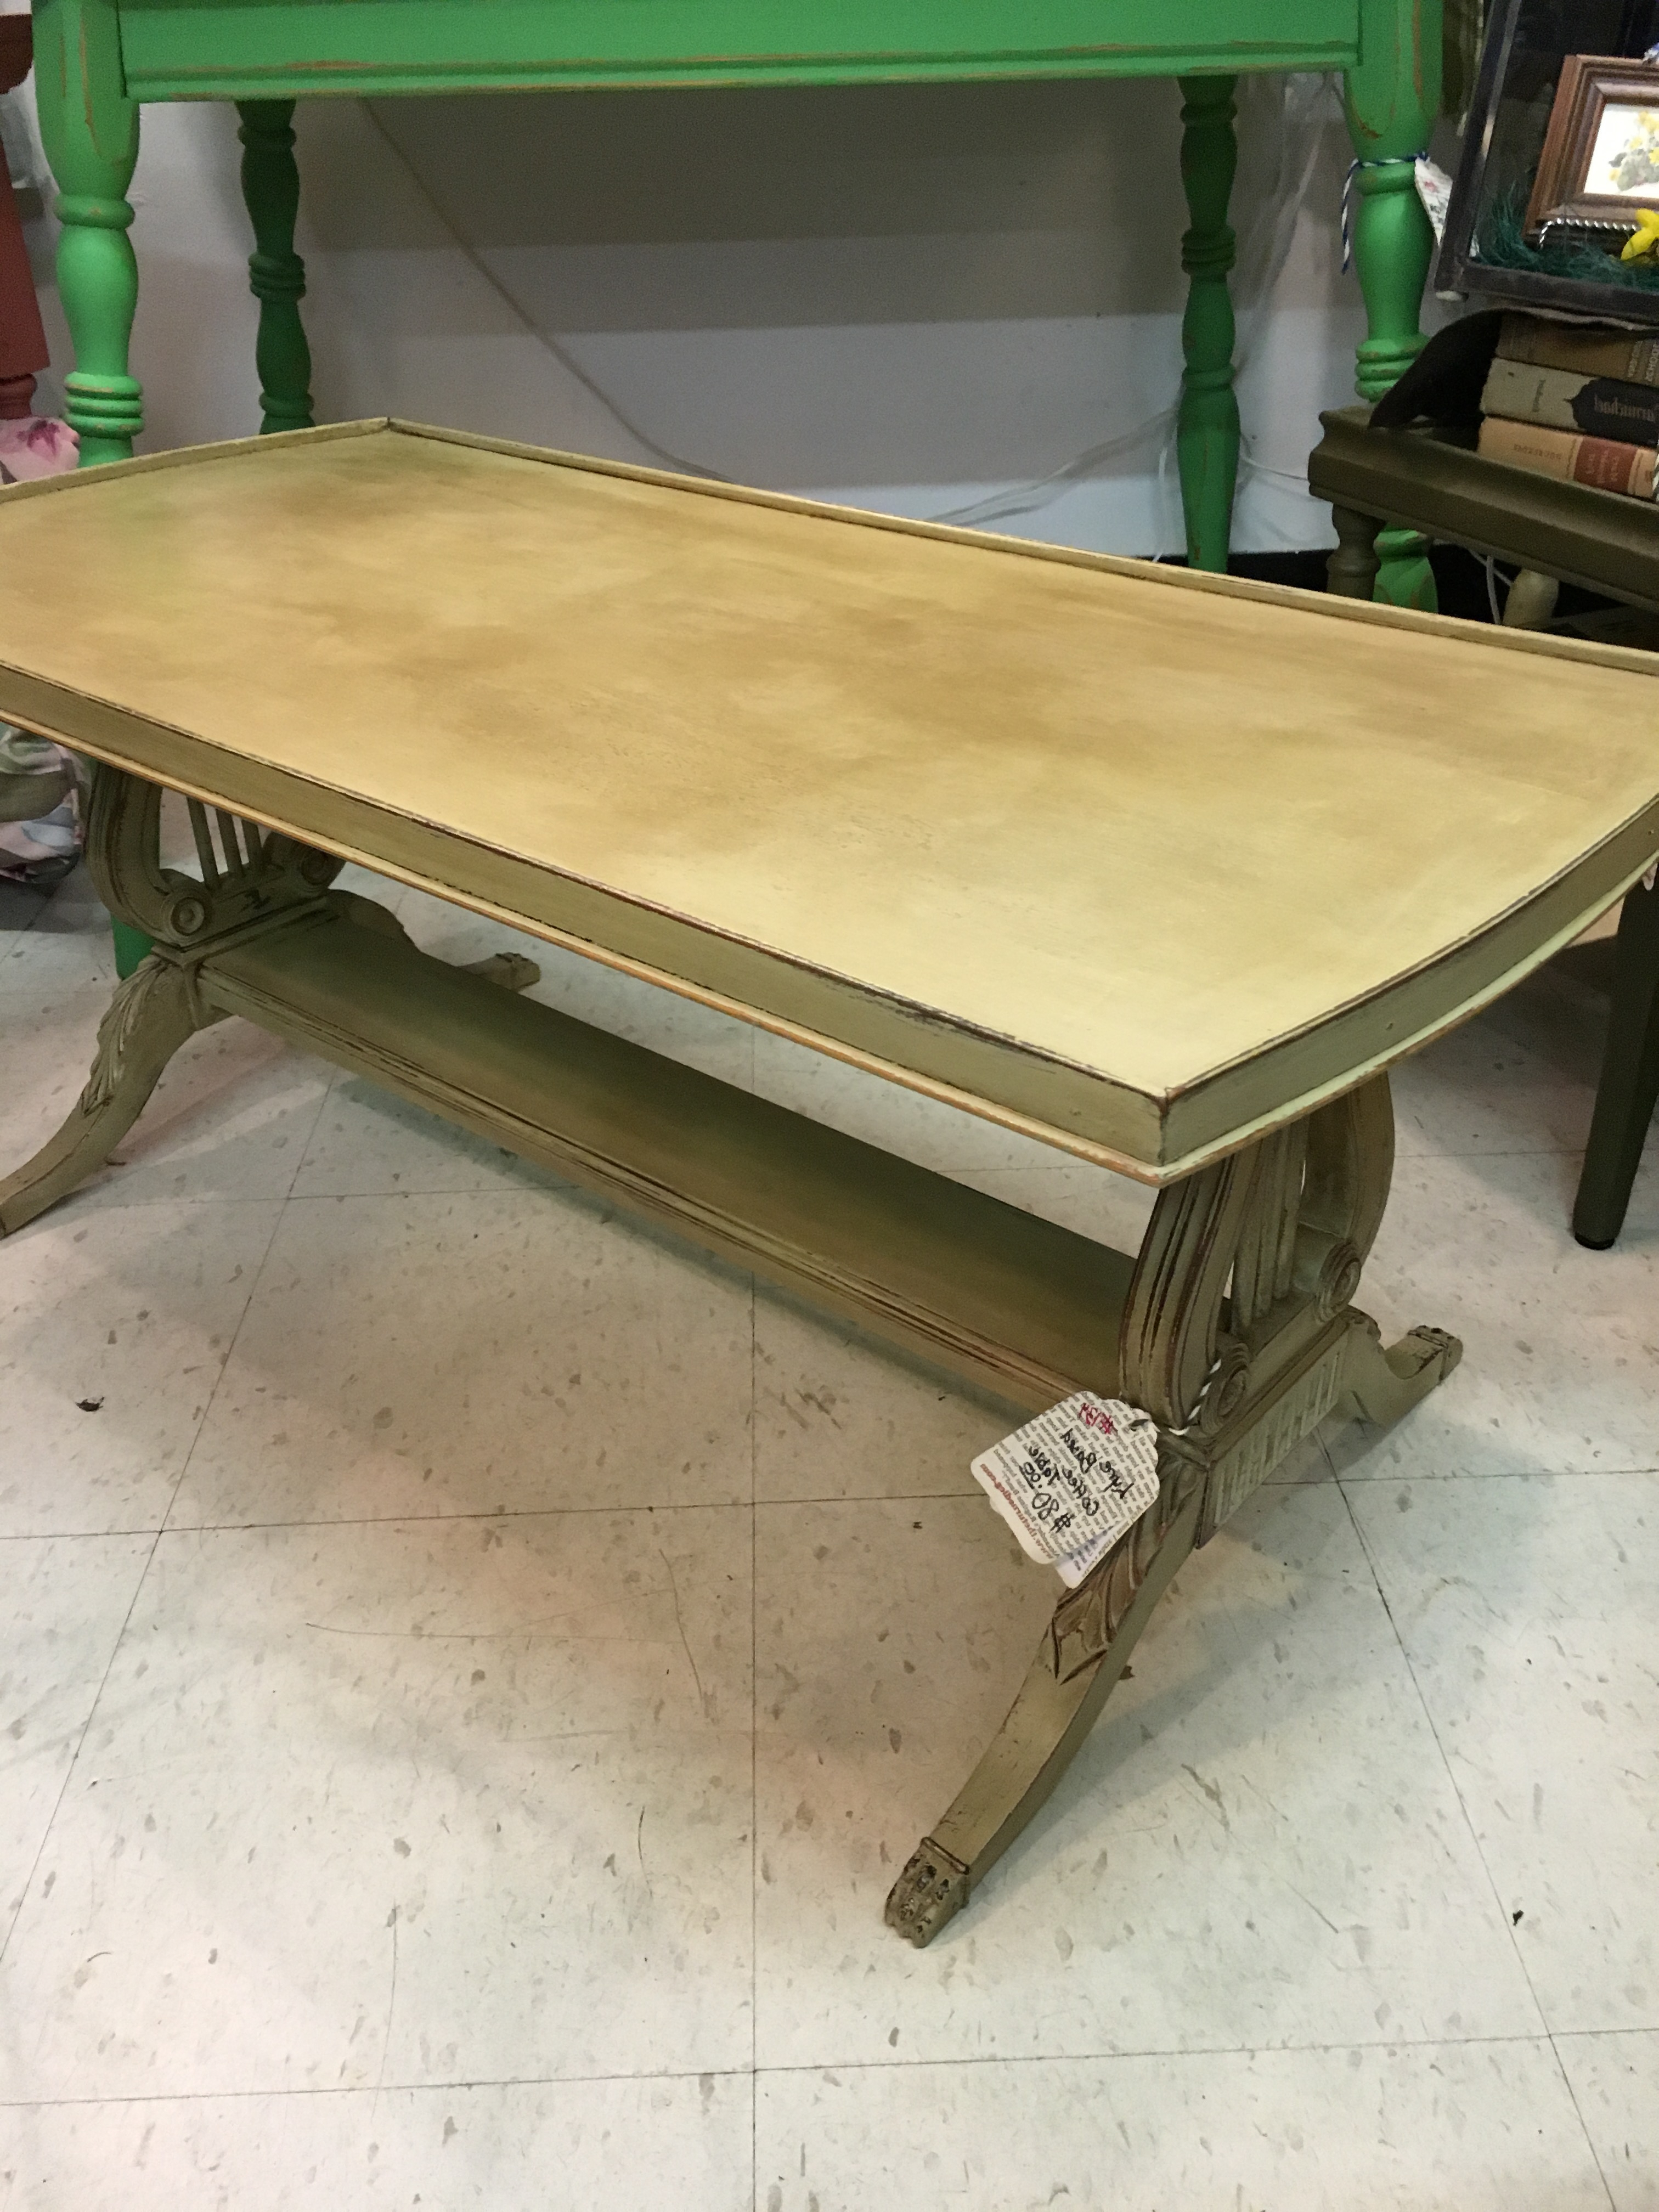 Lyre Coffee Tables Intended For Most Popular Lyre Based Coffee Table $80 Sold – The Turned Leg (View 9 of 20)